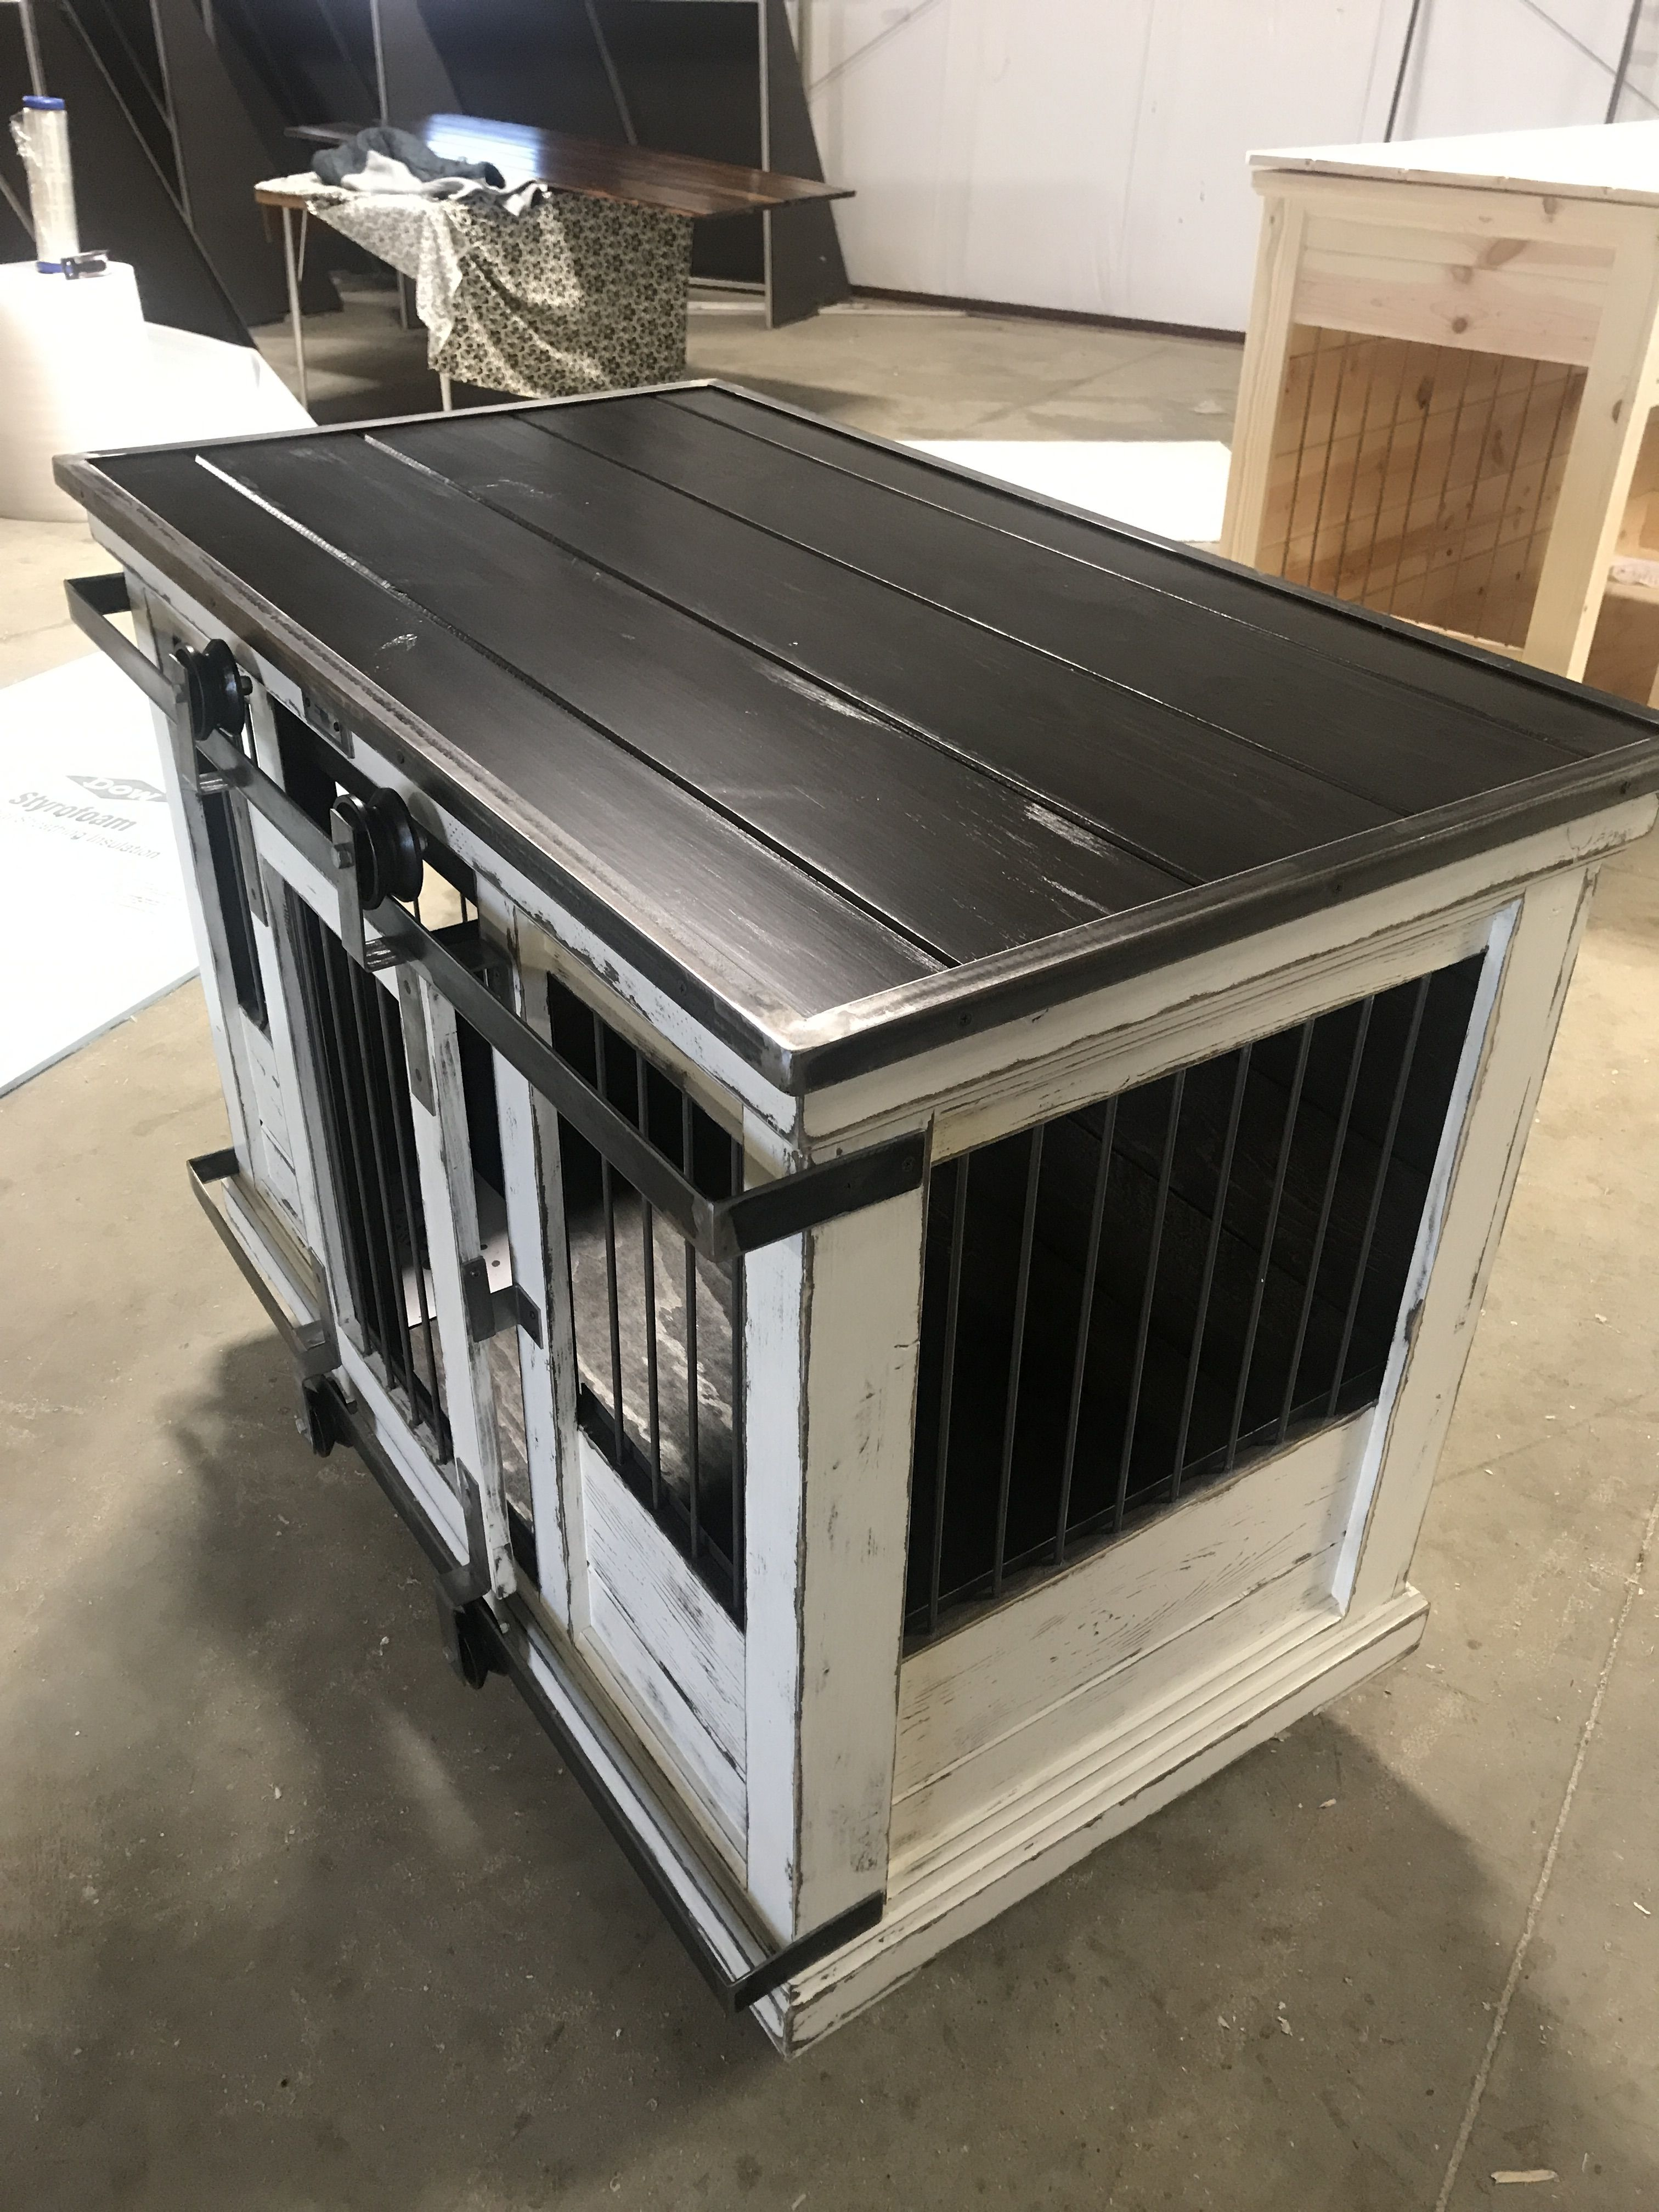 Indoor Dog Kennel With Barn Doors Perfect For Your Big Four Legged Dogs Love That Very Own Den You Love A Great Luxury Dog Kennels Dog Kennel Dog Crate Bed